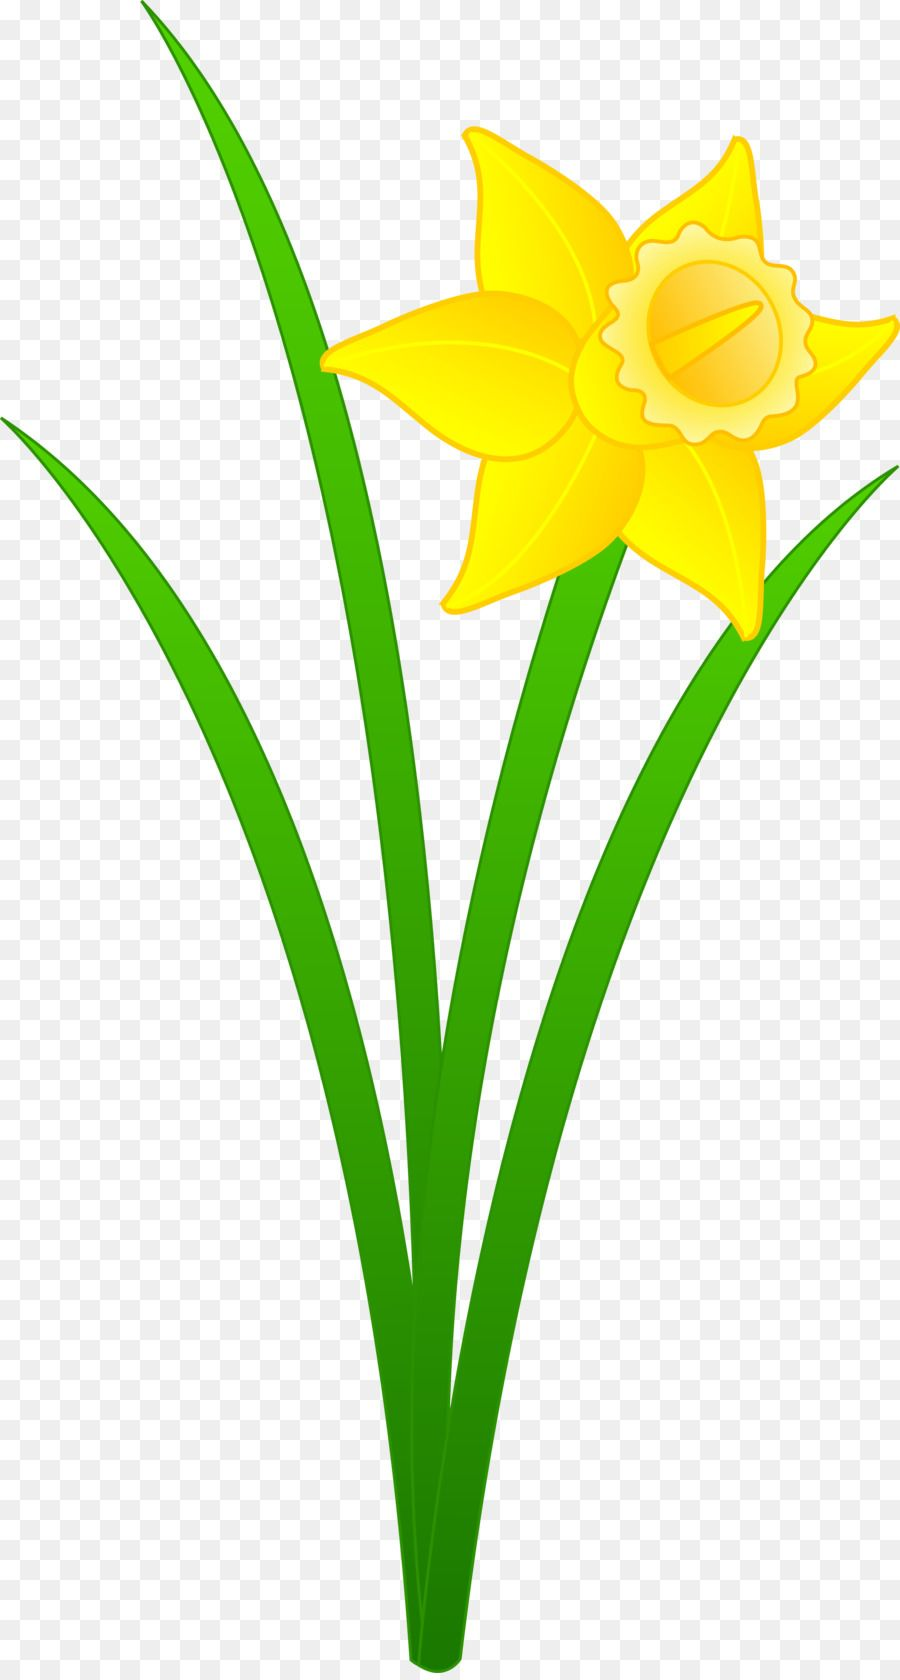 Flowers Background Narcissus Flower Kisspng Daffodil Content Narcissus Flower Flower Clipart Daffodils